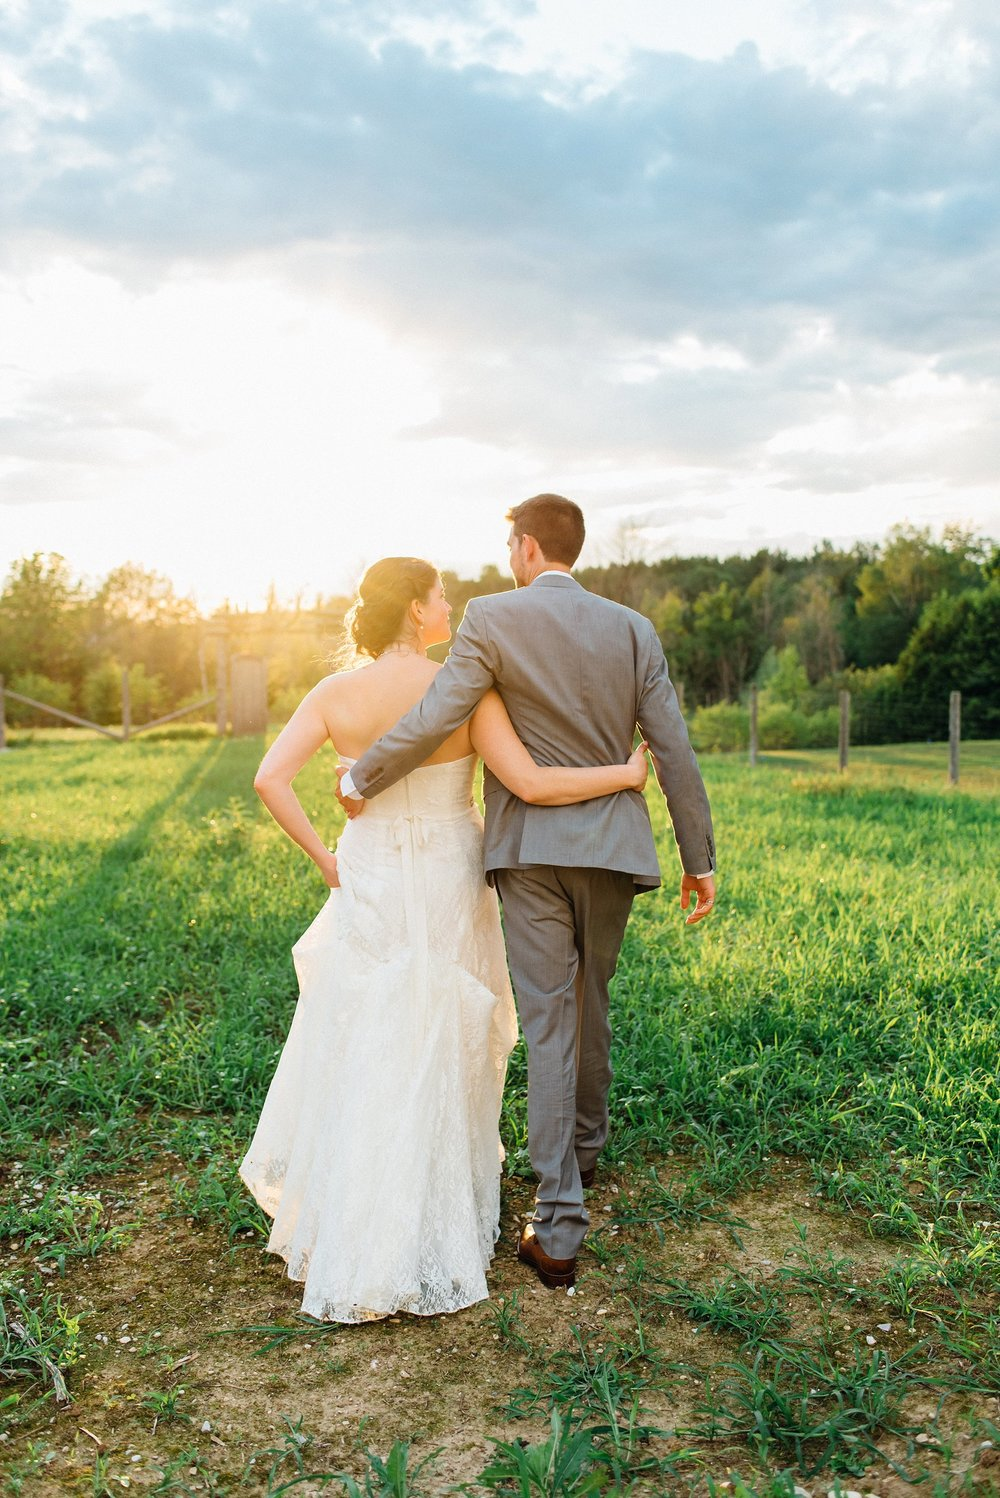 Ali and Batoul Photography - light, airy, indie documentary Ottawa wedding photographer_0209.jpg